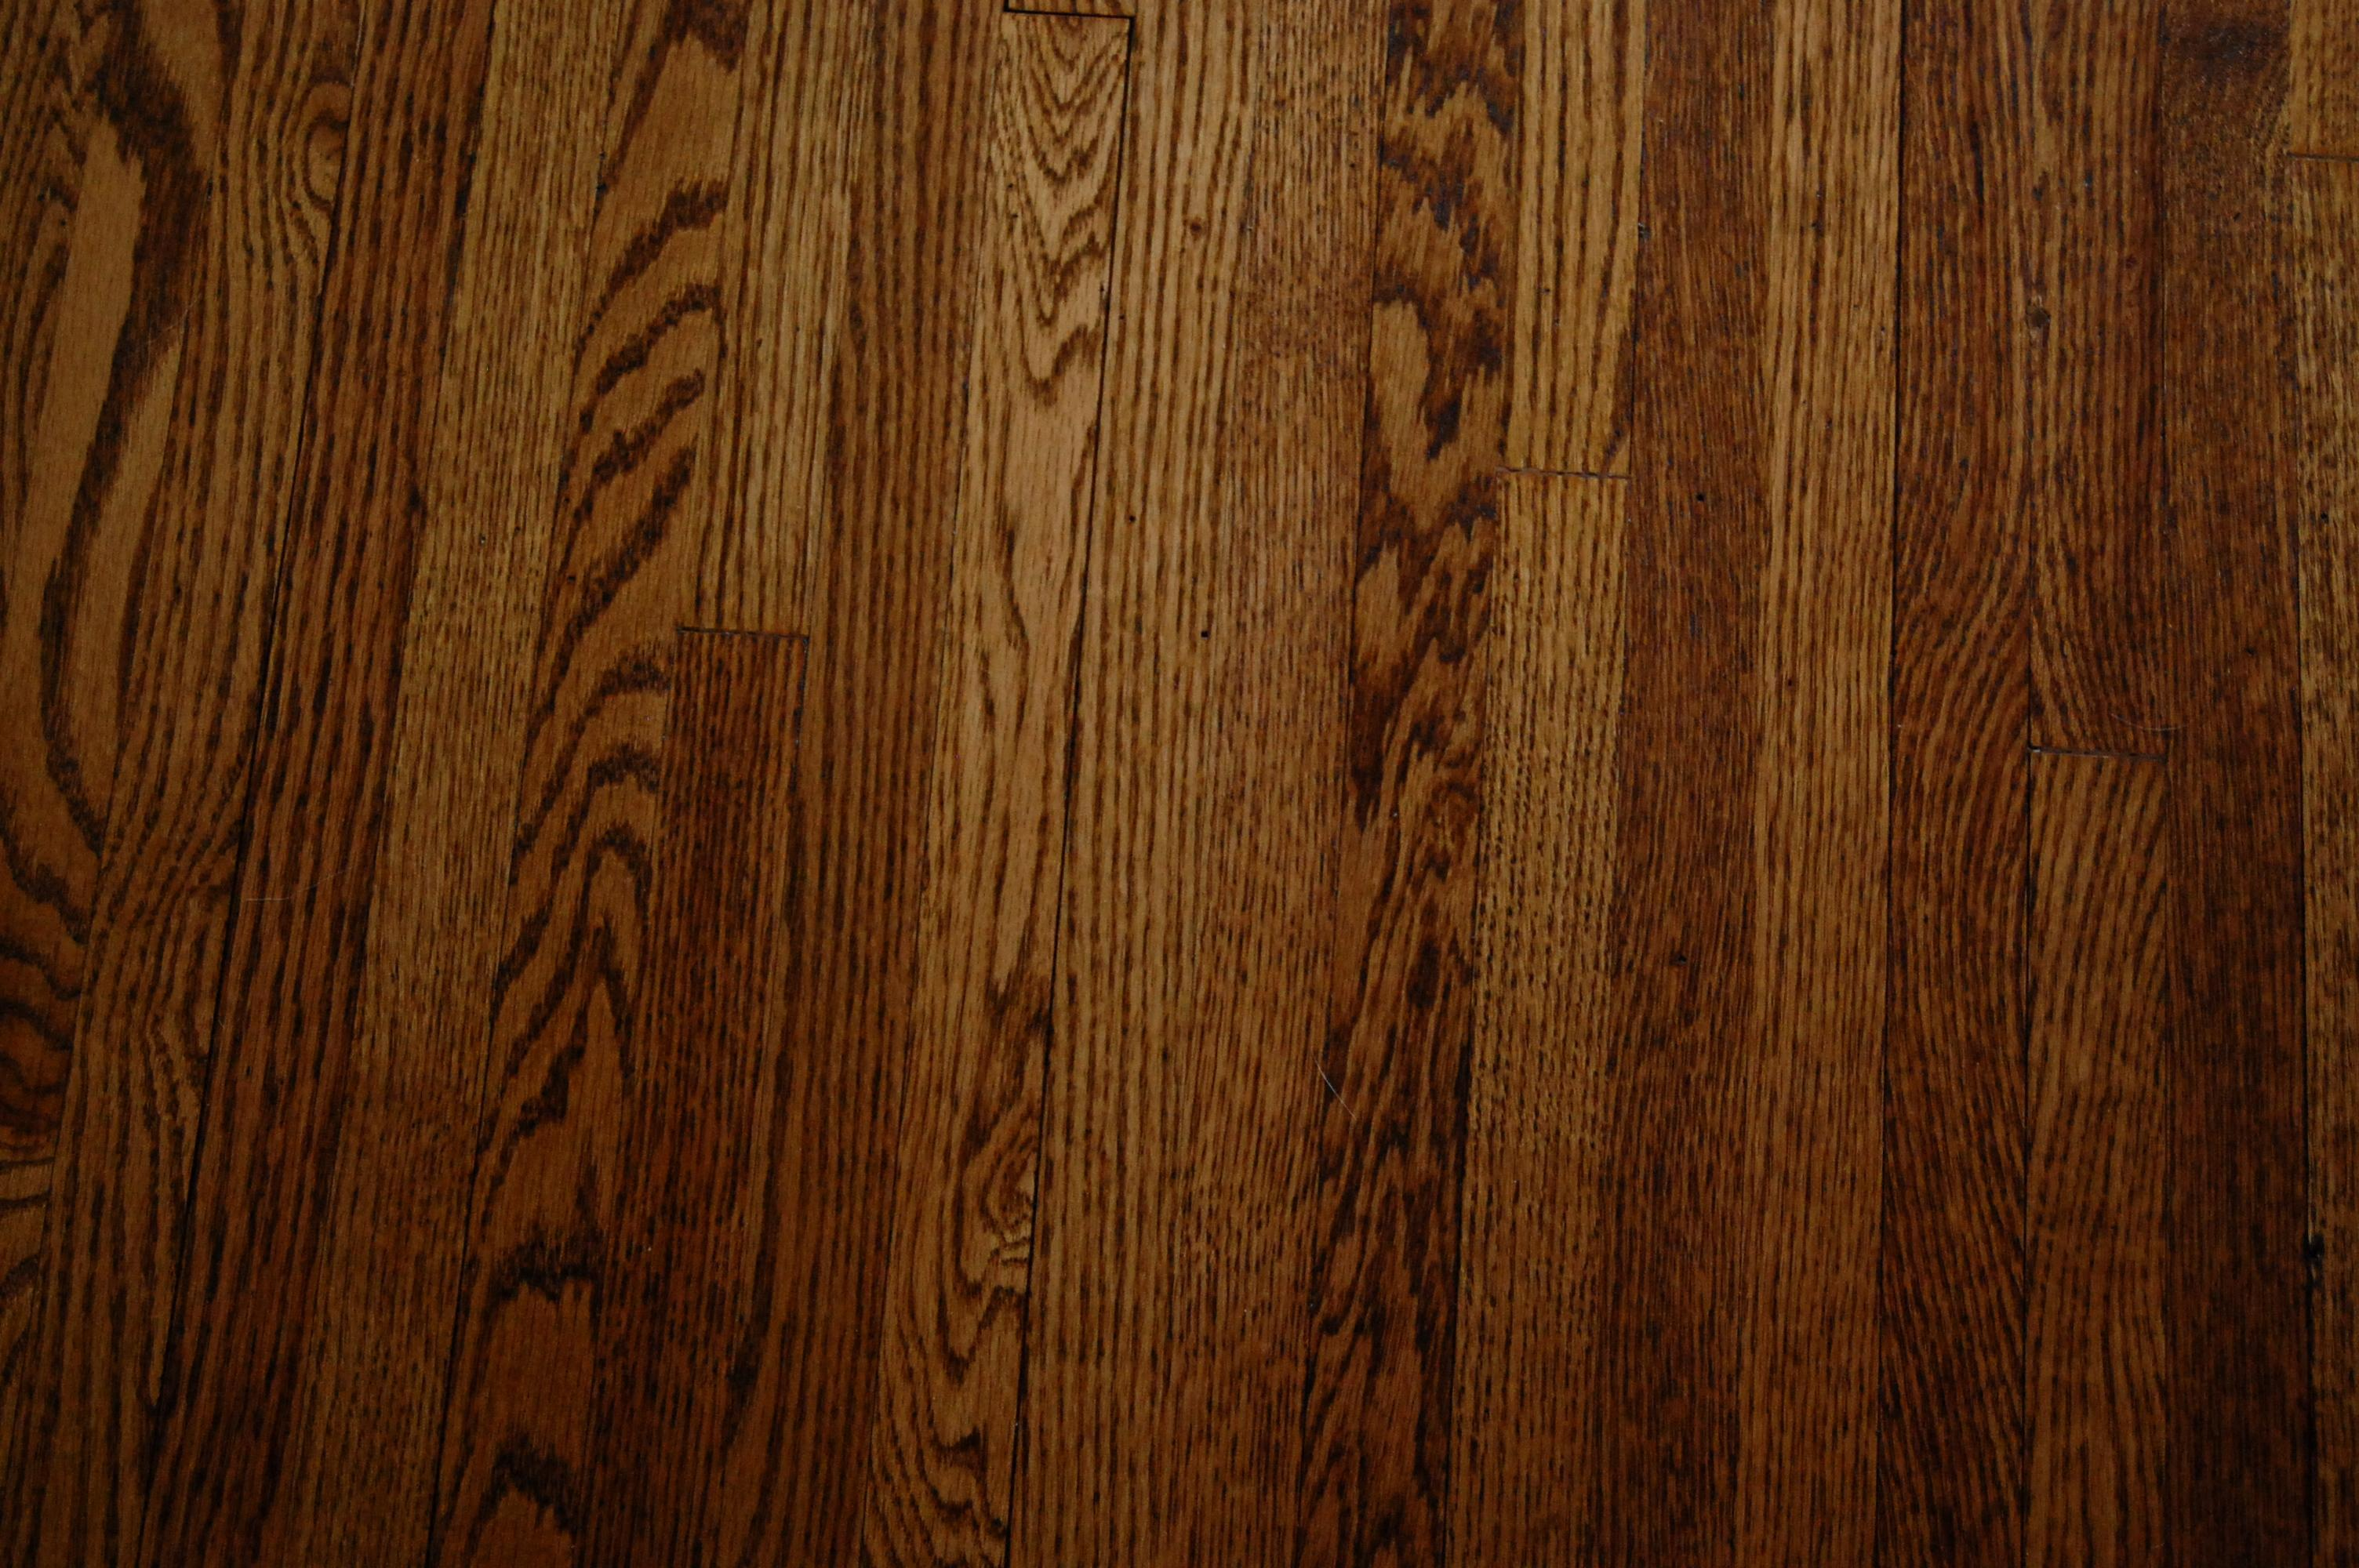 Hardwood Floors By Artisan